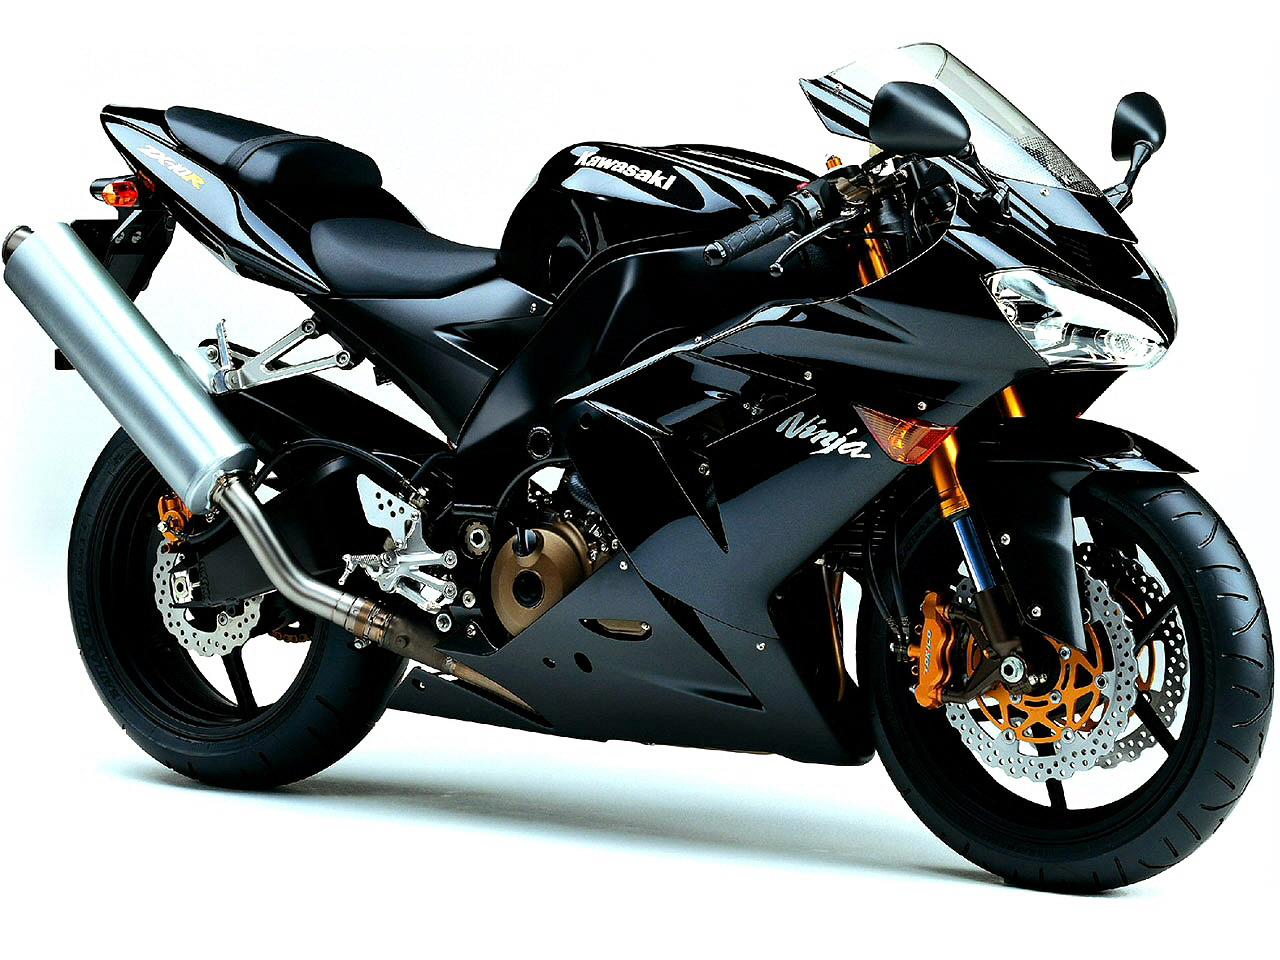 Popular Wallpapers HD Popular Bikes Wallpapers HD 1280x960